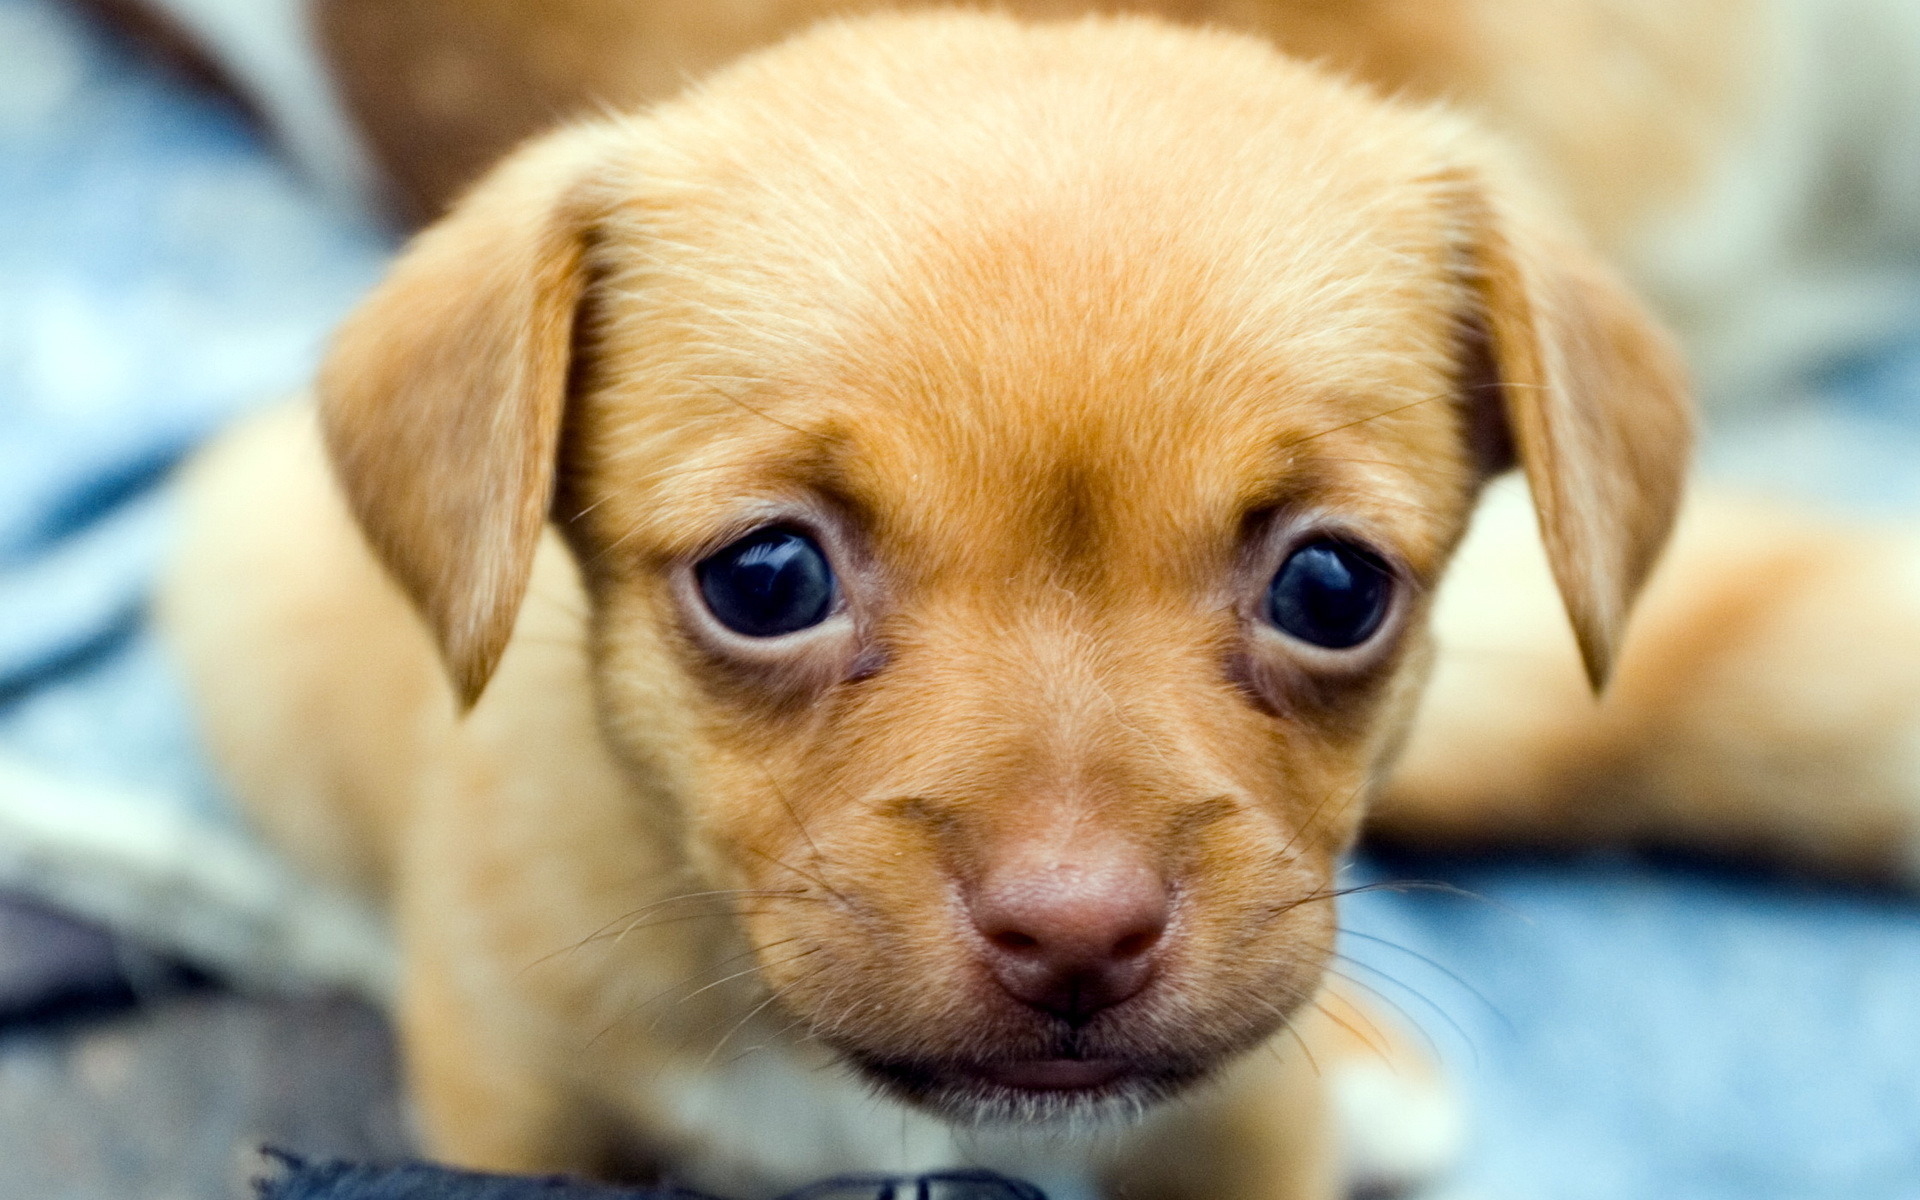 1000+ images about puppy dogs on Pinterest | Chihuahuas, Chubby